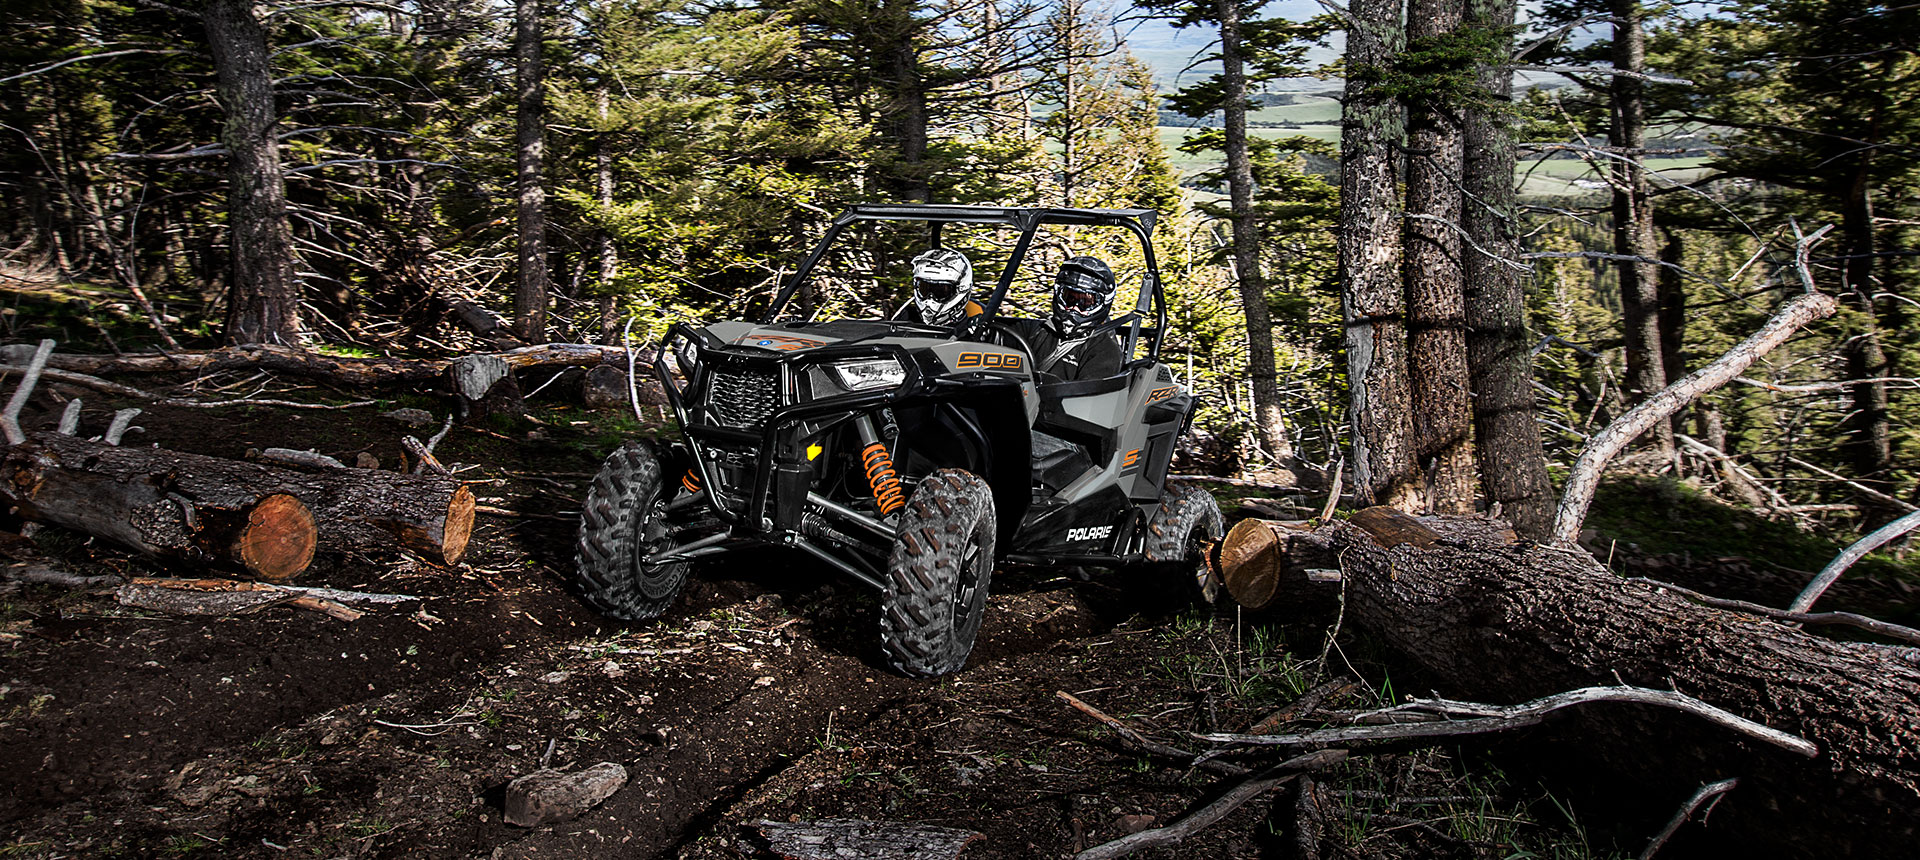 2019 Polaris RZR S 900 EPS in Ledgewood, New Jersey